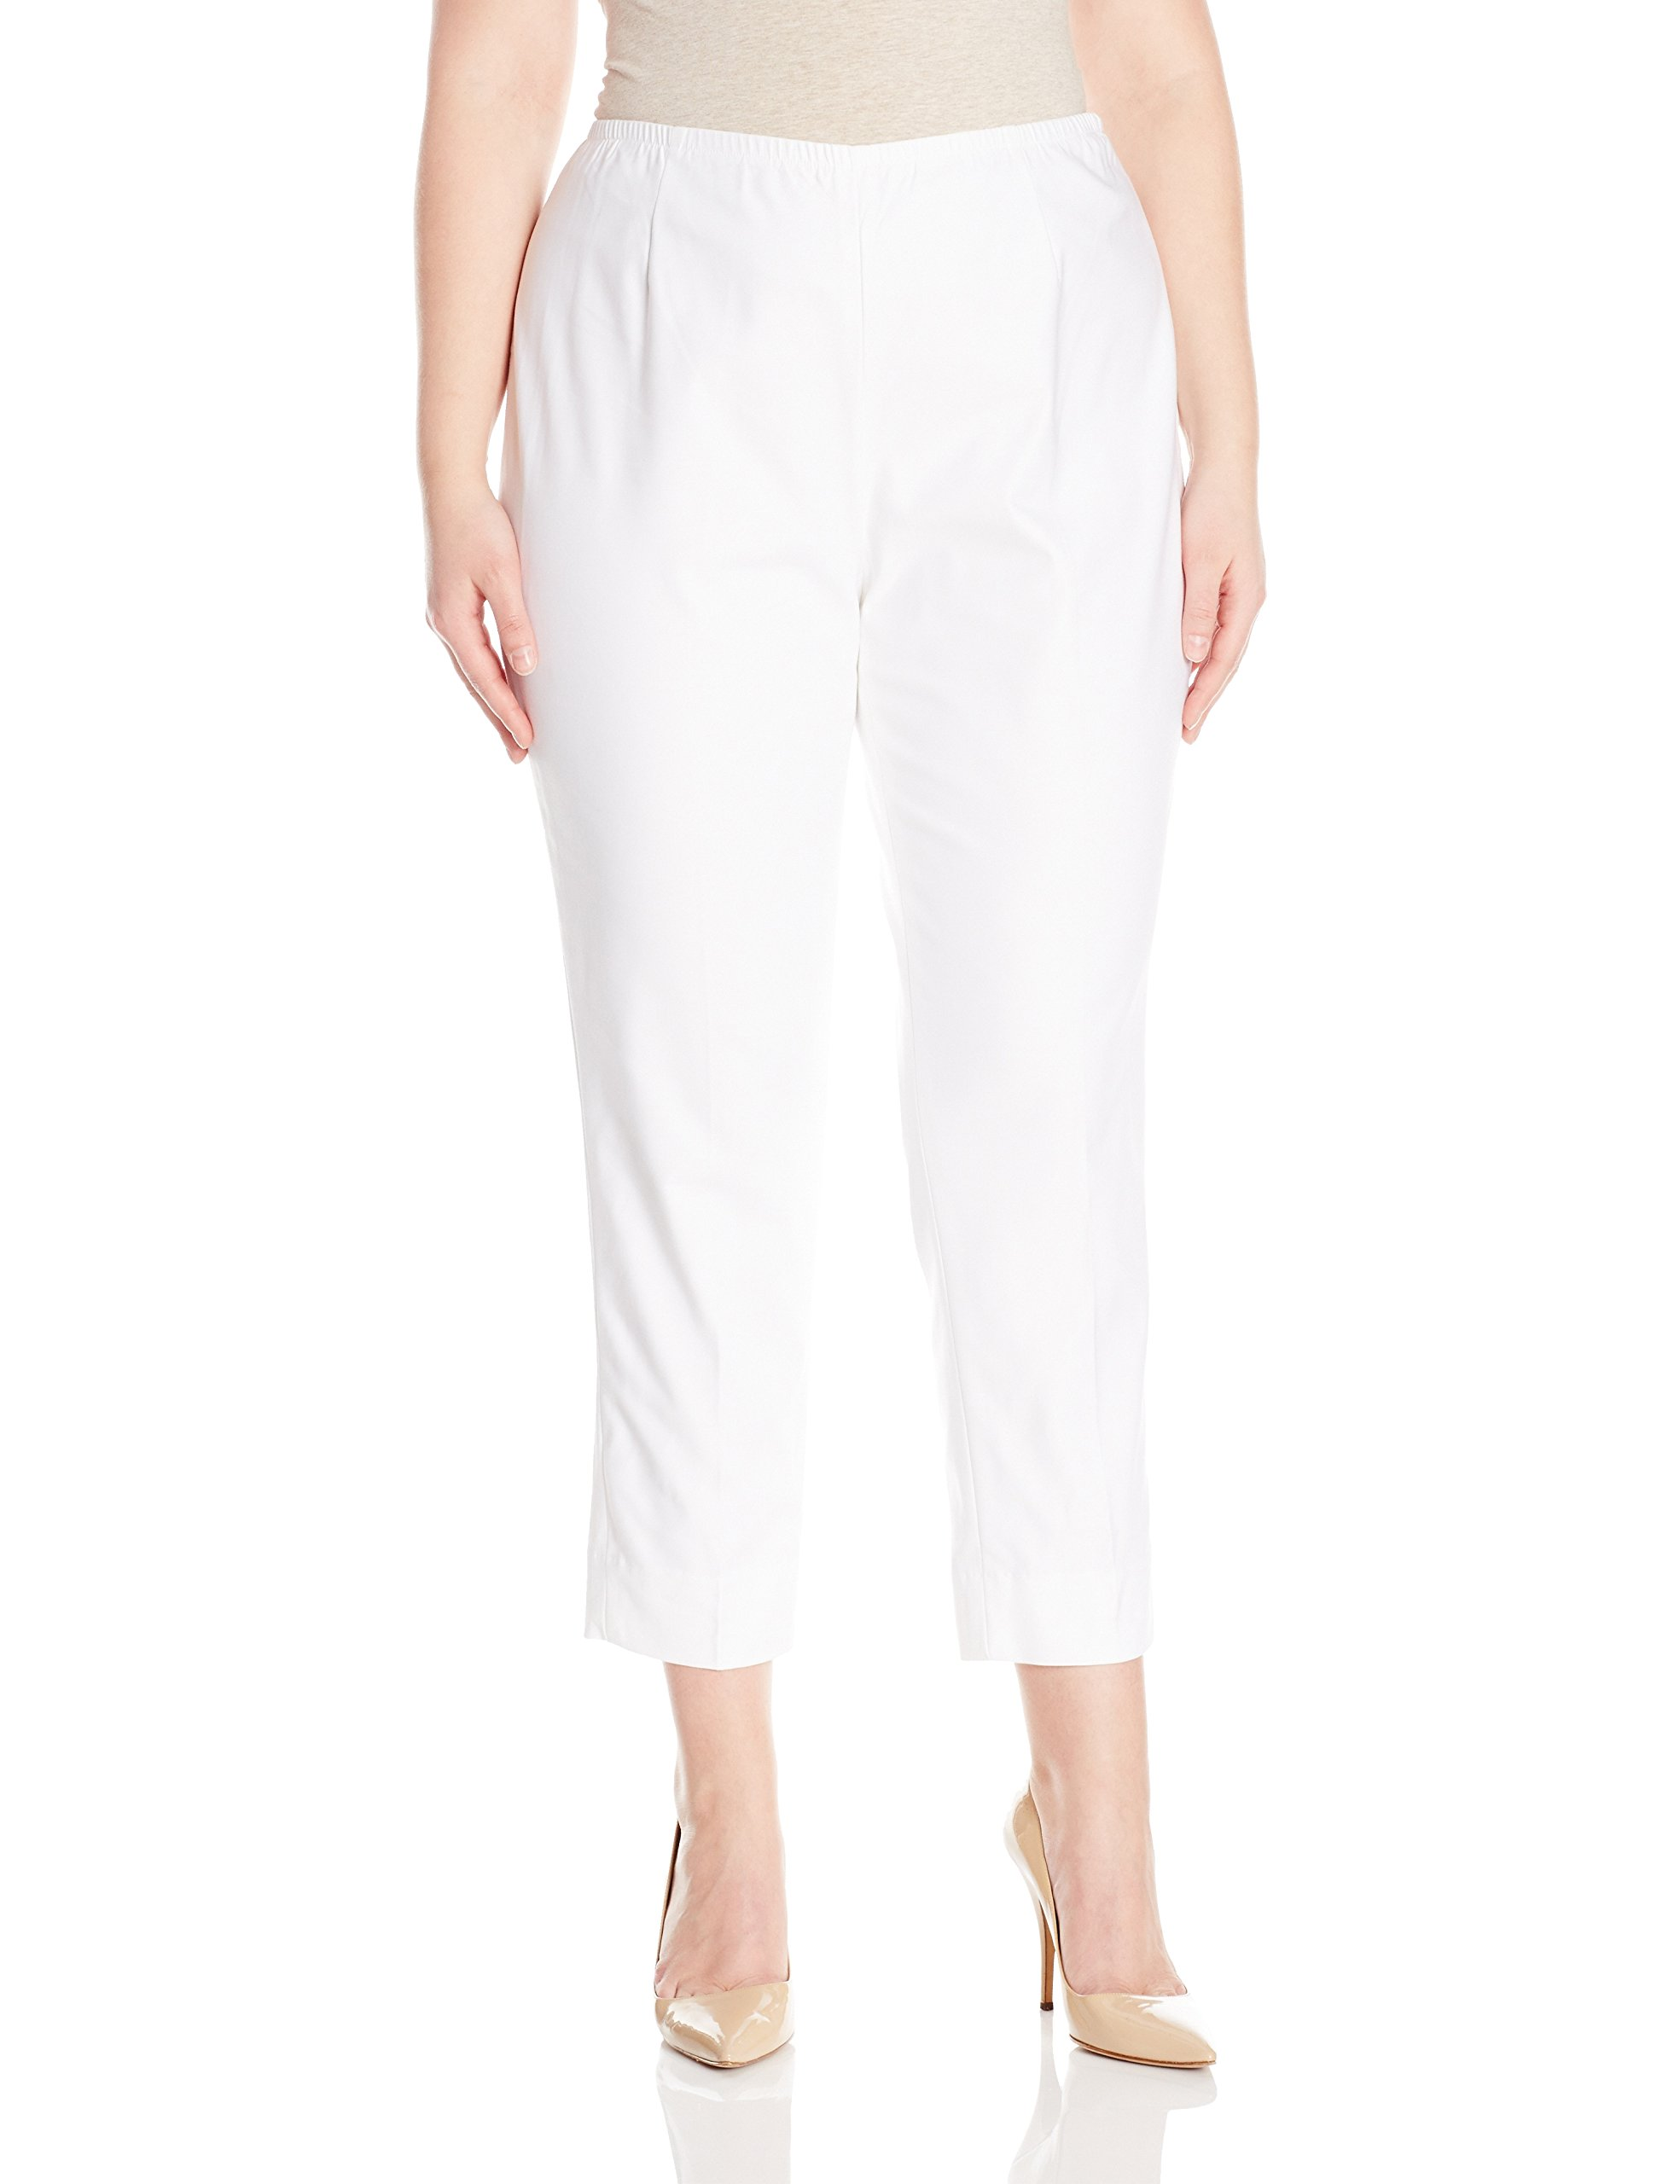 Nic+zoe Women's Plus-size Perfect Pant Side Zip Ankle Length, Paper White, 18W by NIC+ZOE